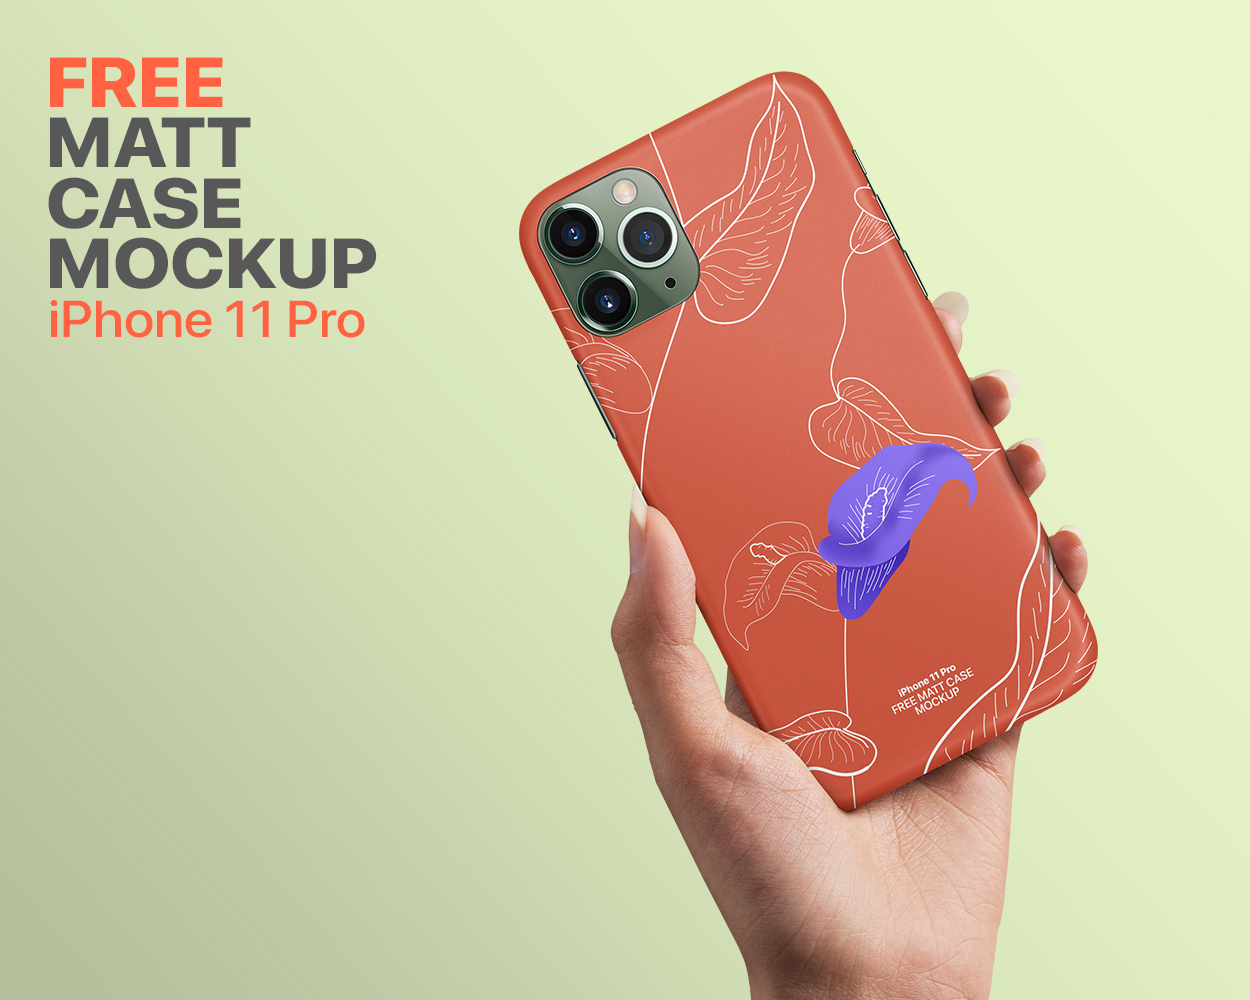 Free iPhone 11 Matt Case Mockup